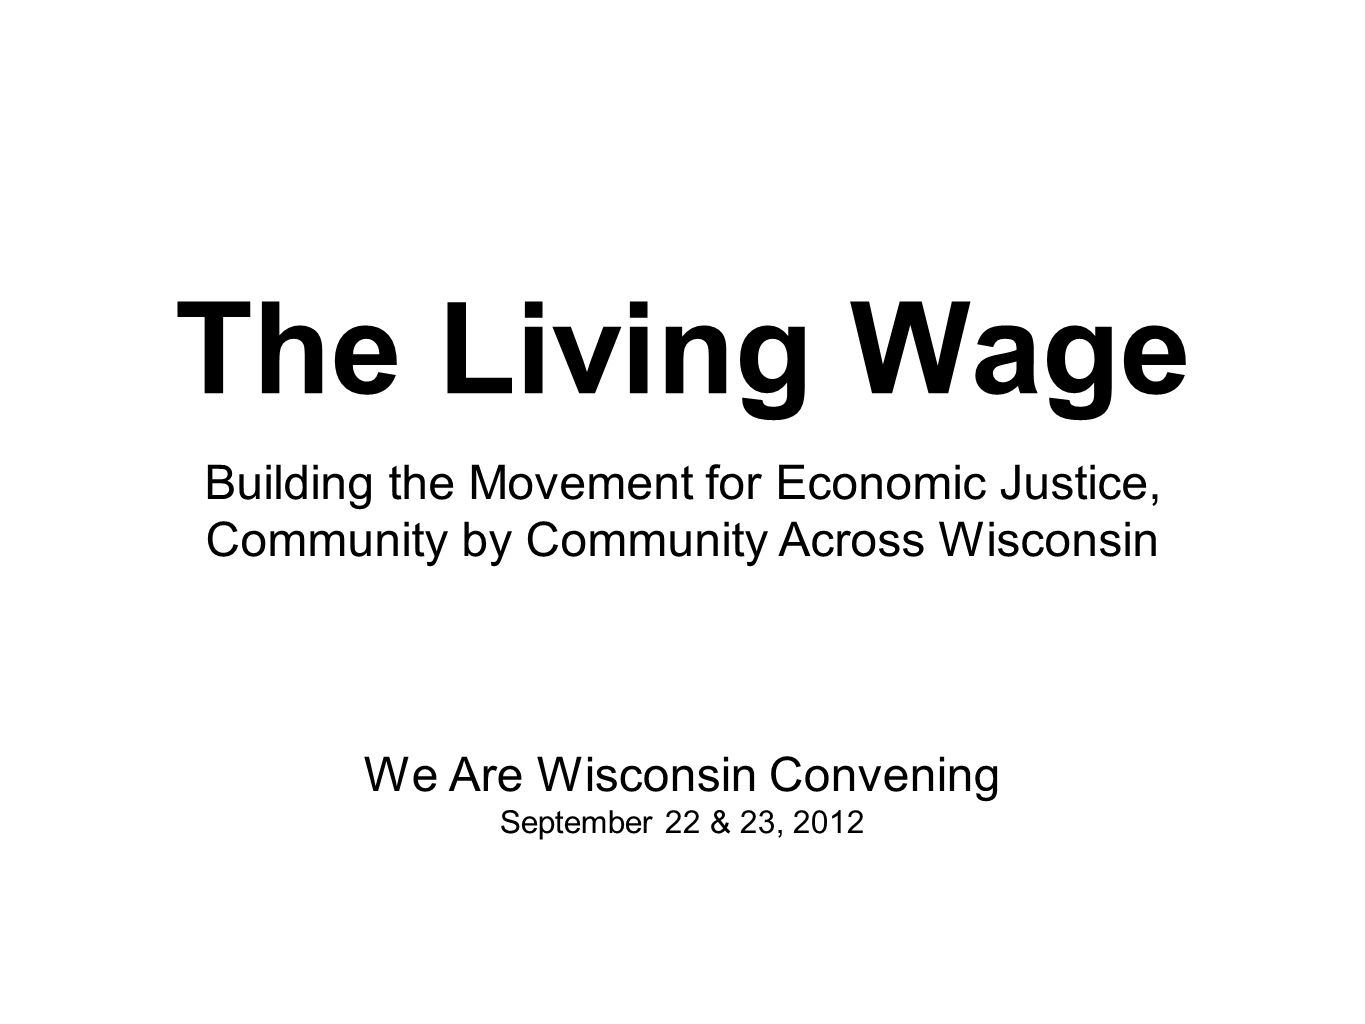 The Living Wage We Are Wisconsin Convening September 22 & 23, 2012 Building the Movement for Economic Justice, Community by Community Across Wisconsin